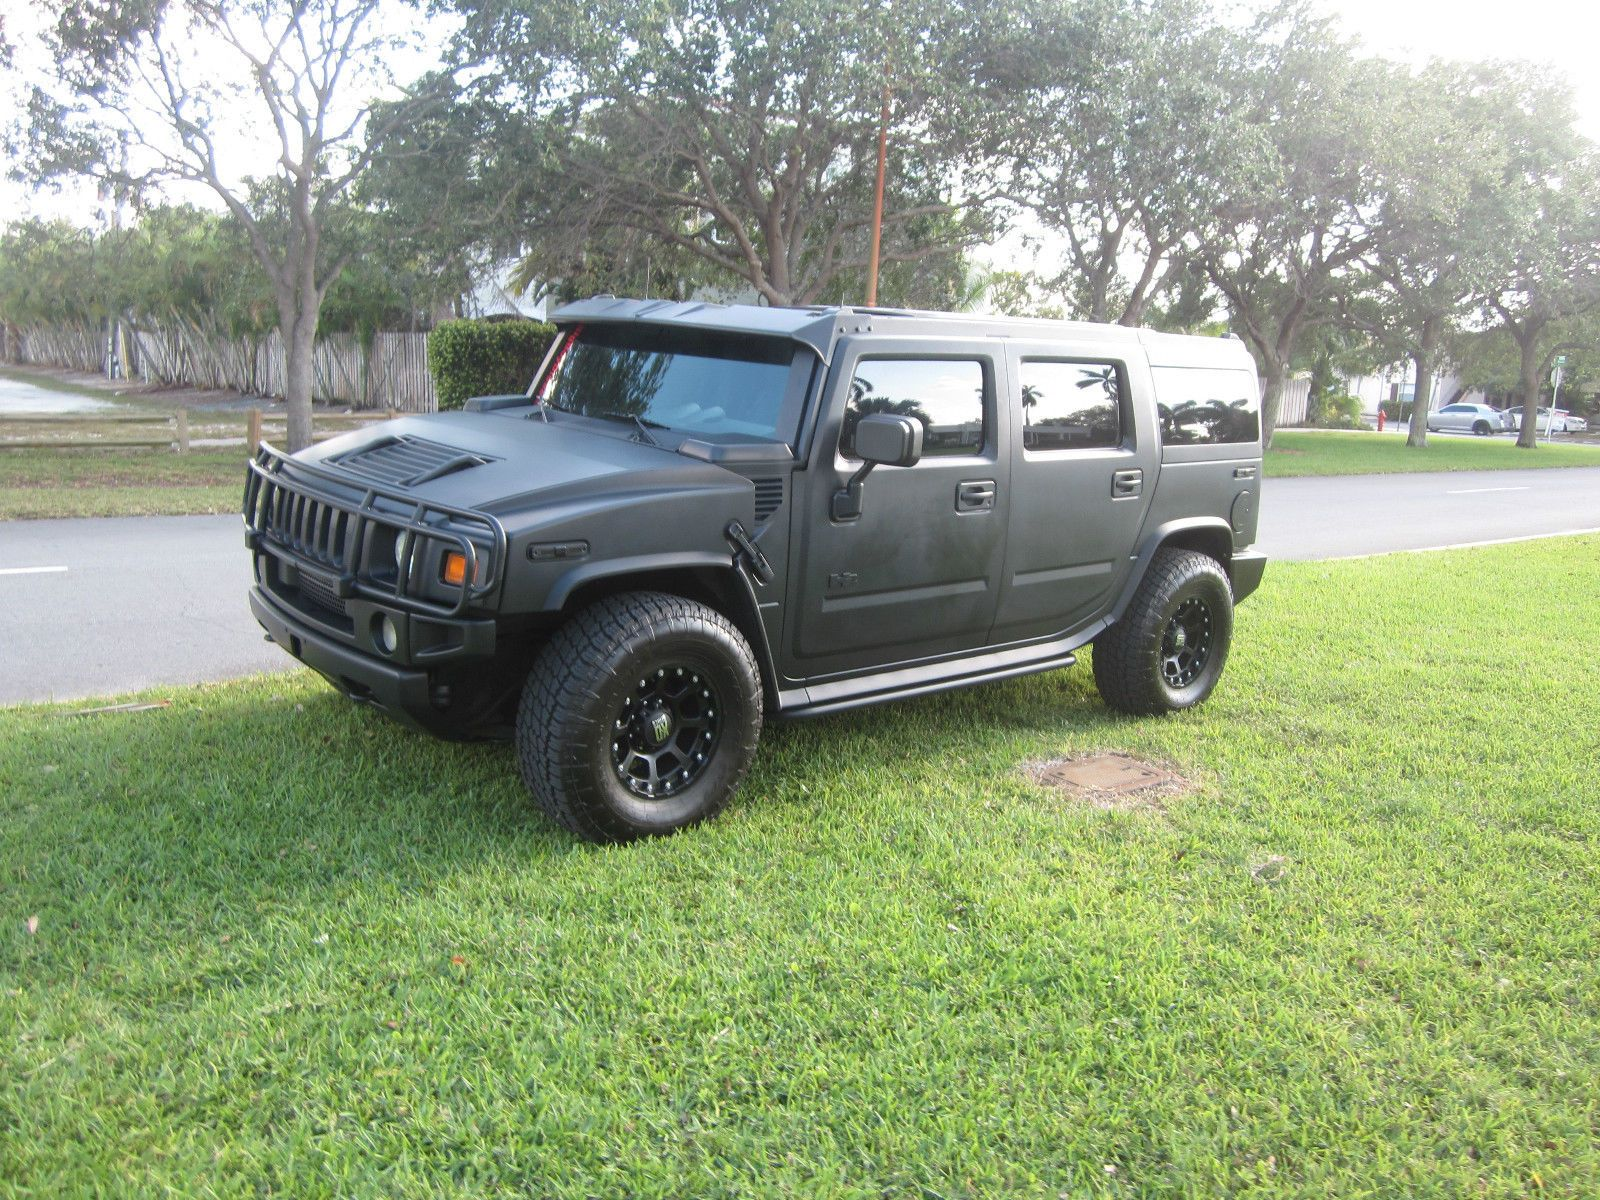 Custom show 2003 Hummer H2 4—4 4x4s for sale